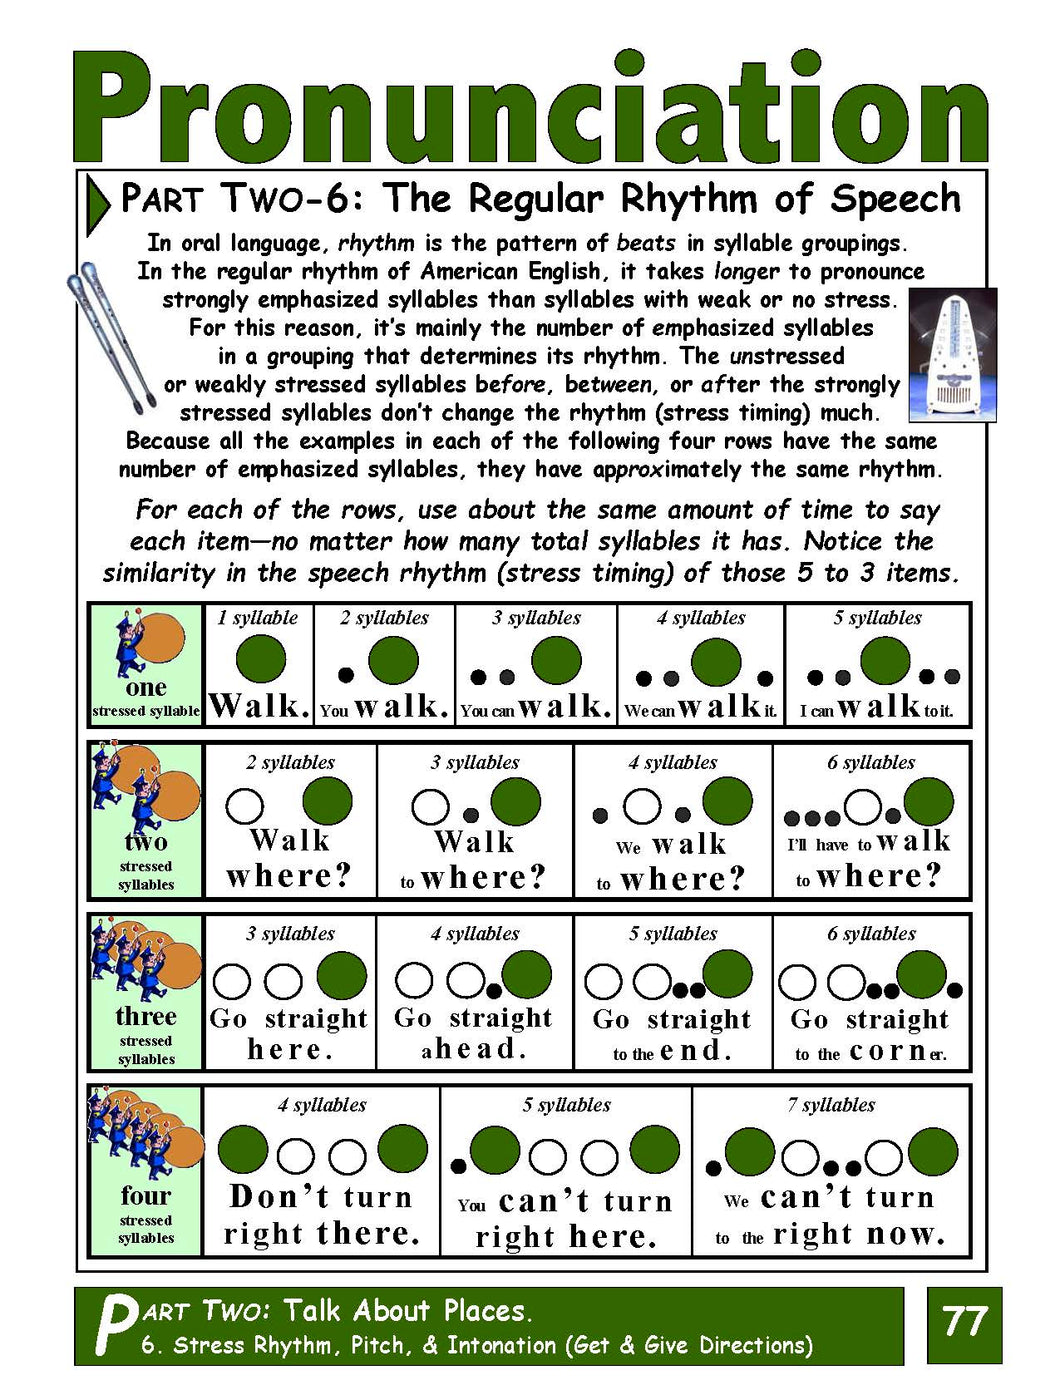 E-02.09 Practice the Regular Rhythm of Speech with Pitch & Intonation; Get & Give Directions